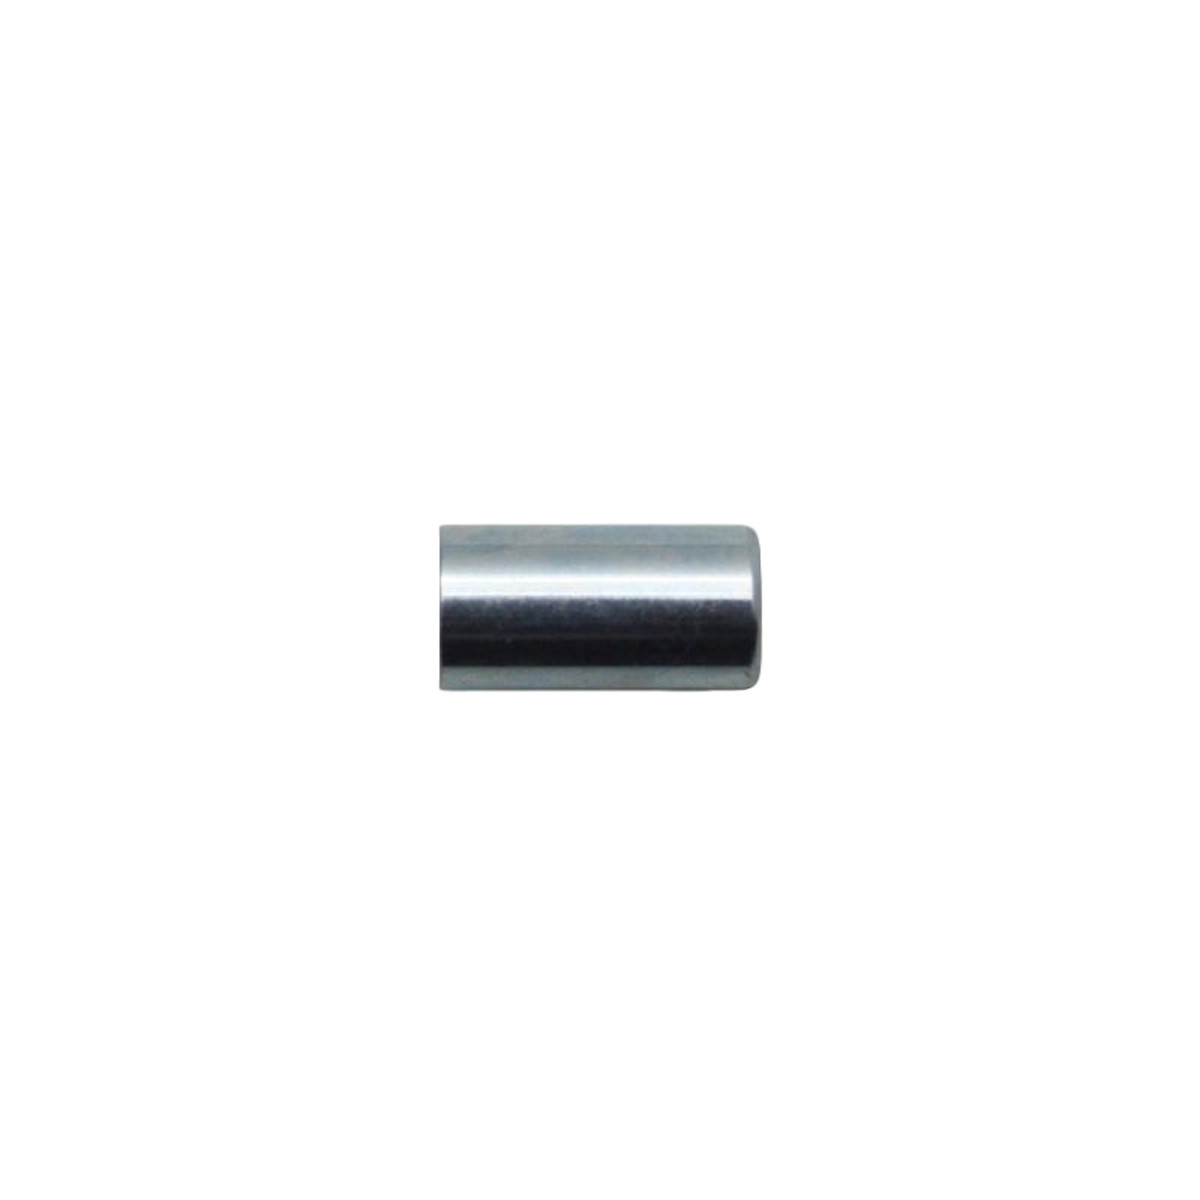 Embout de Gaine 5x11mm